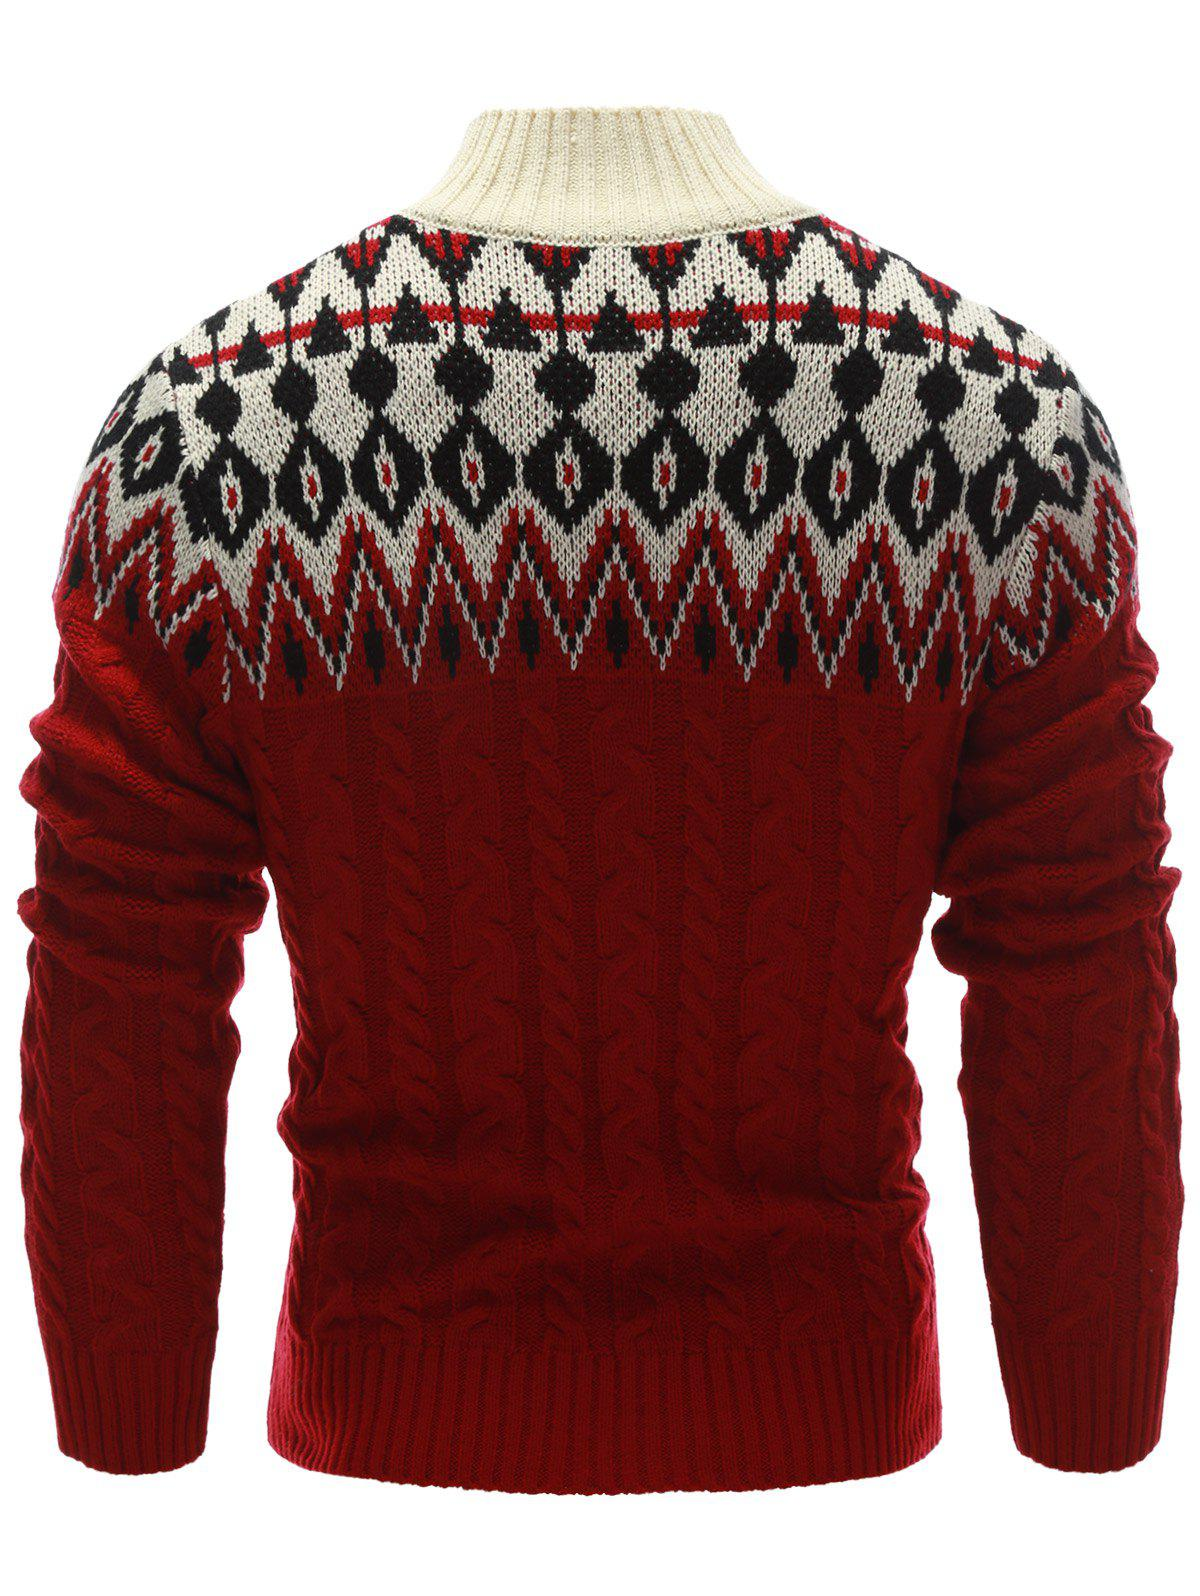 2018 Button Up Zigzag Pattern Cable Knit Sweater RED XL In ...